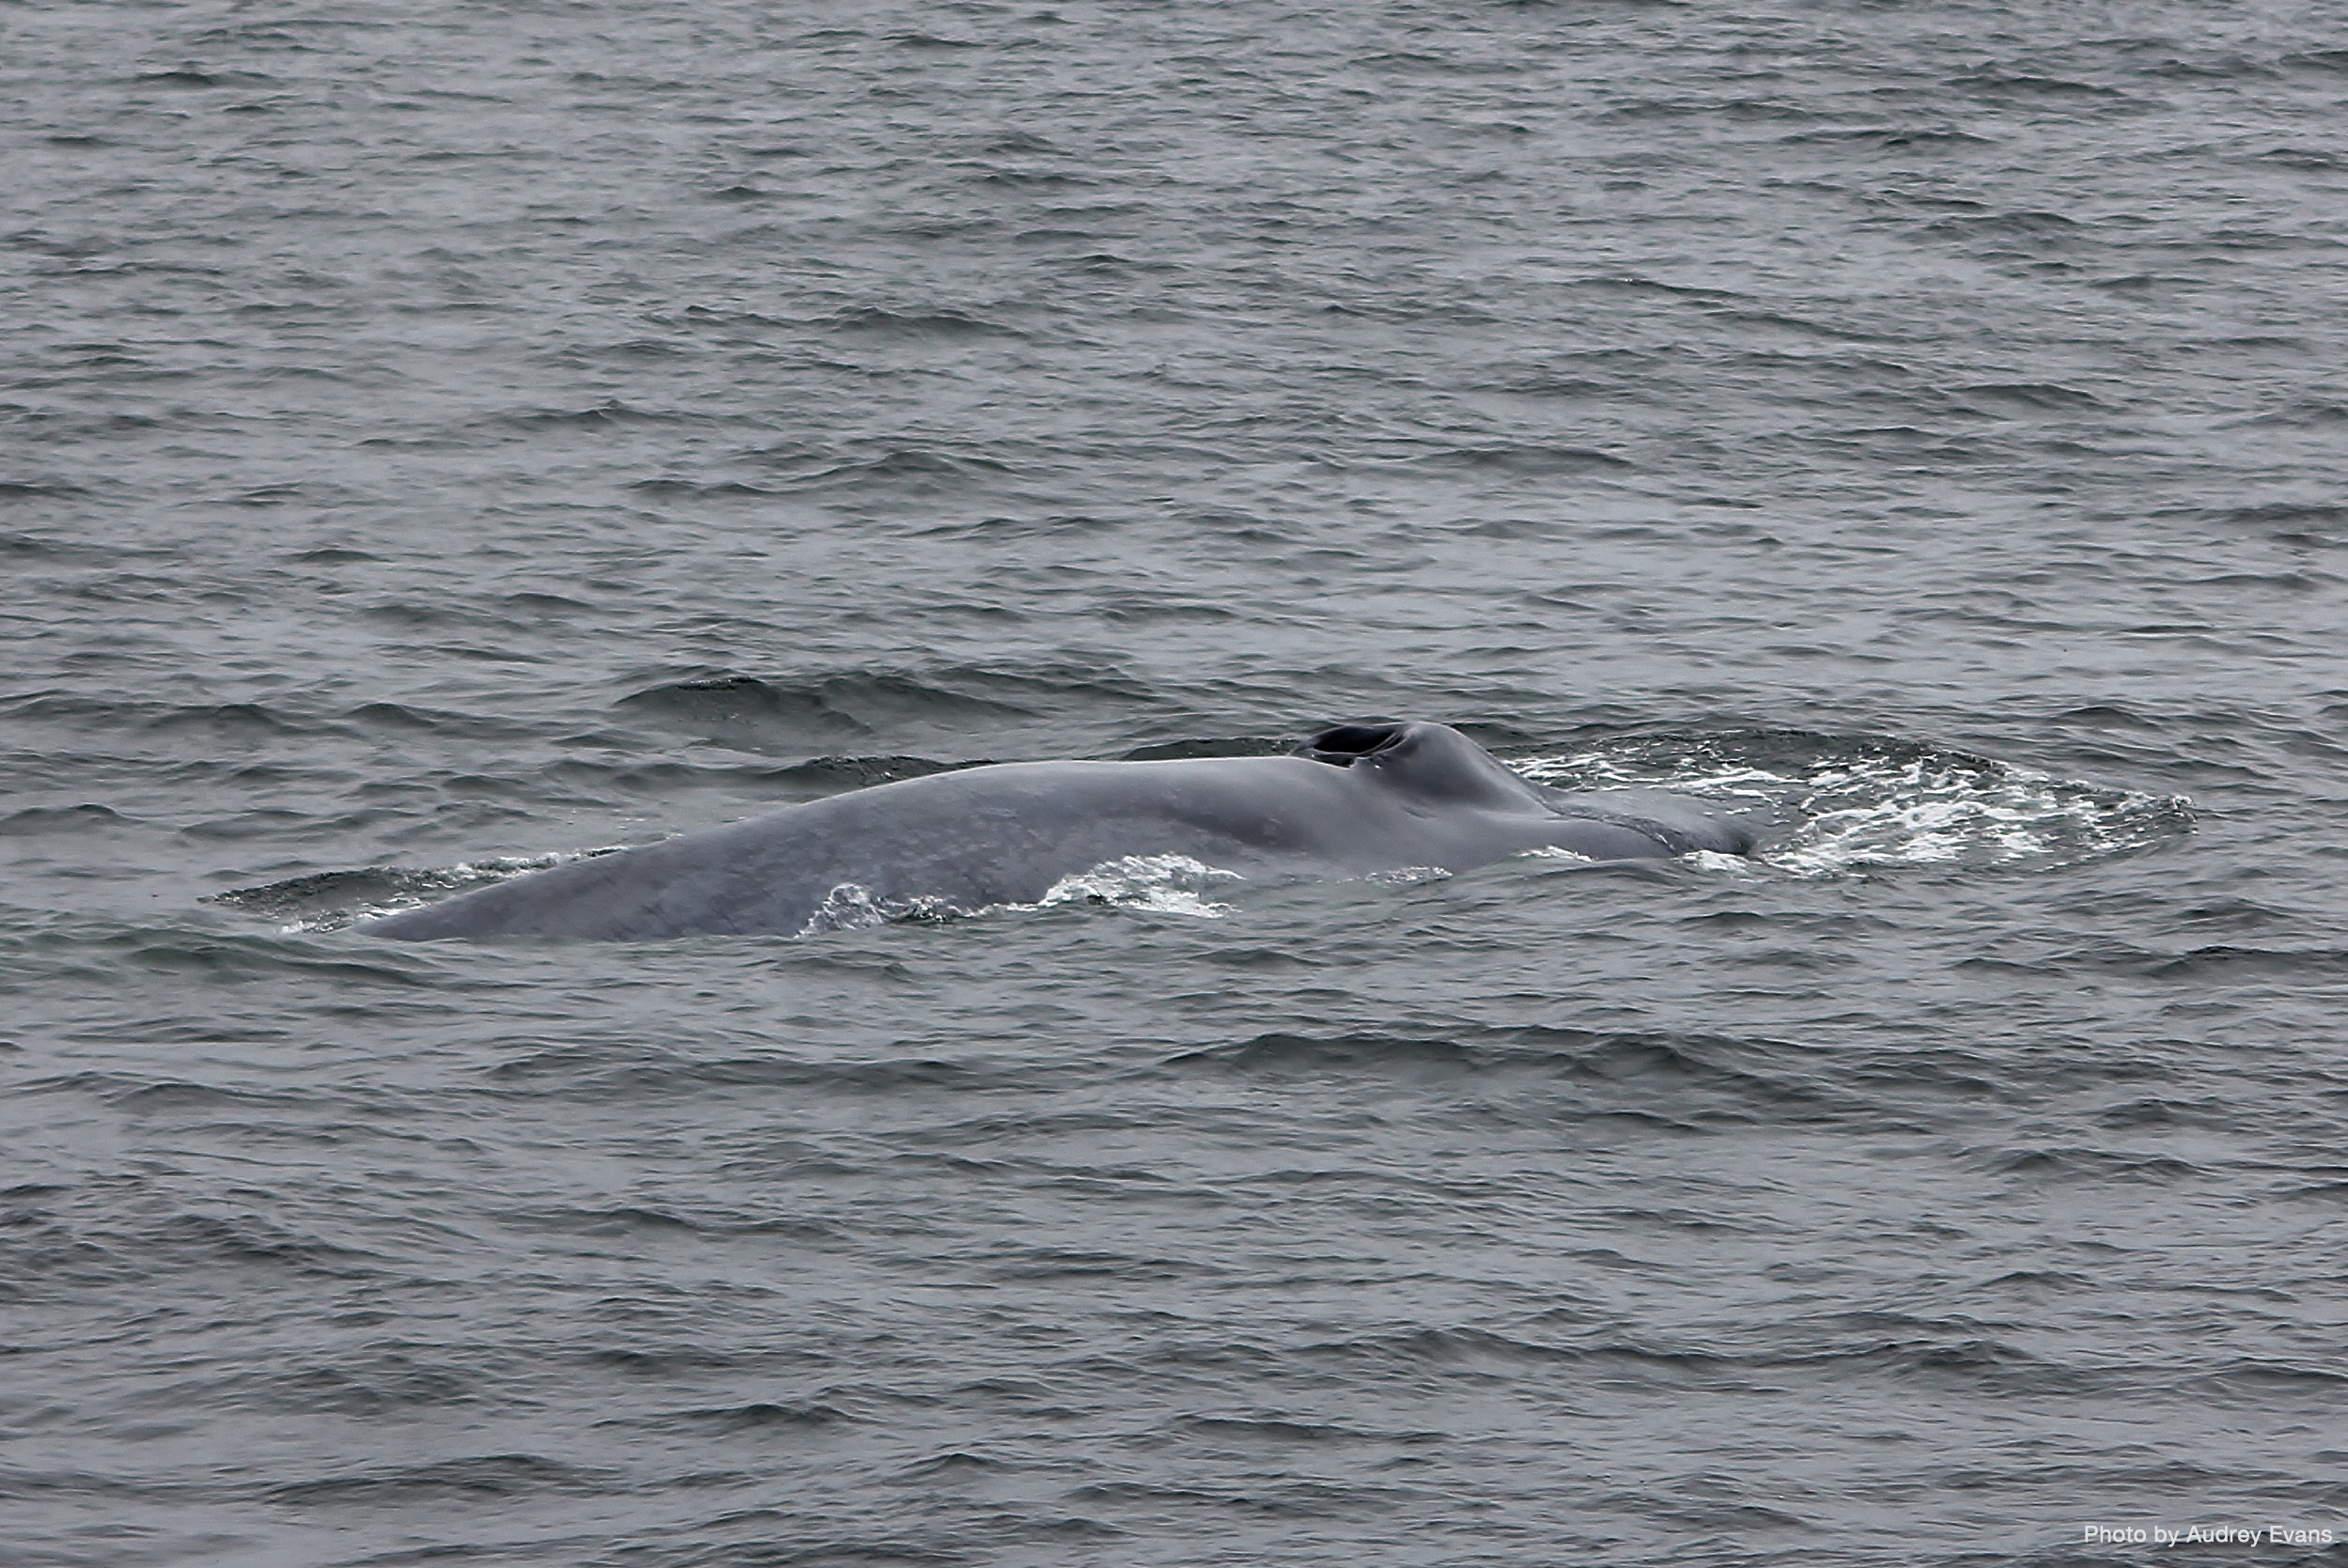 Blue whales found locally around the San Diego coast can reach up to 90 feet in length. Photo by Audrey Evans.